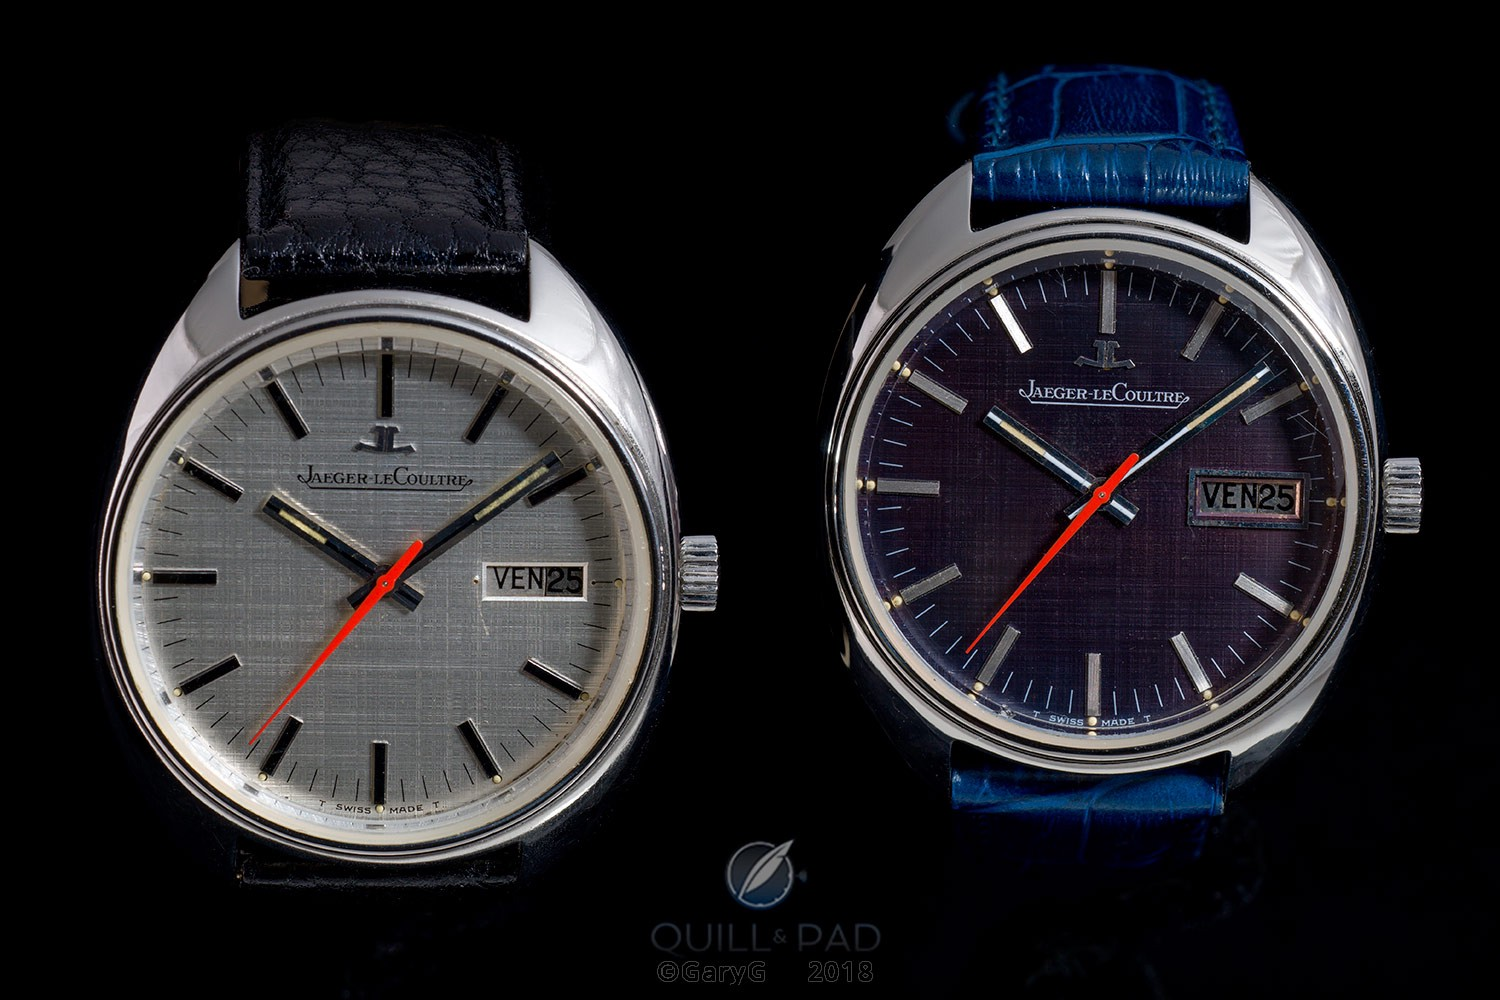 His and his turned into his and hers: a pair of prototype watches from Jaeger-LeCoultre